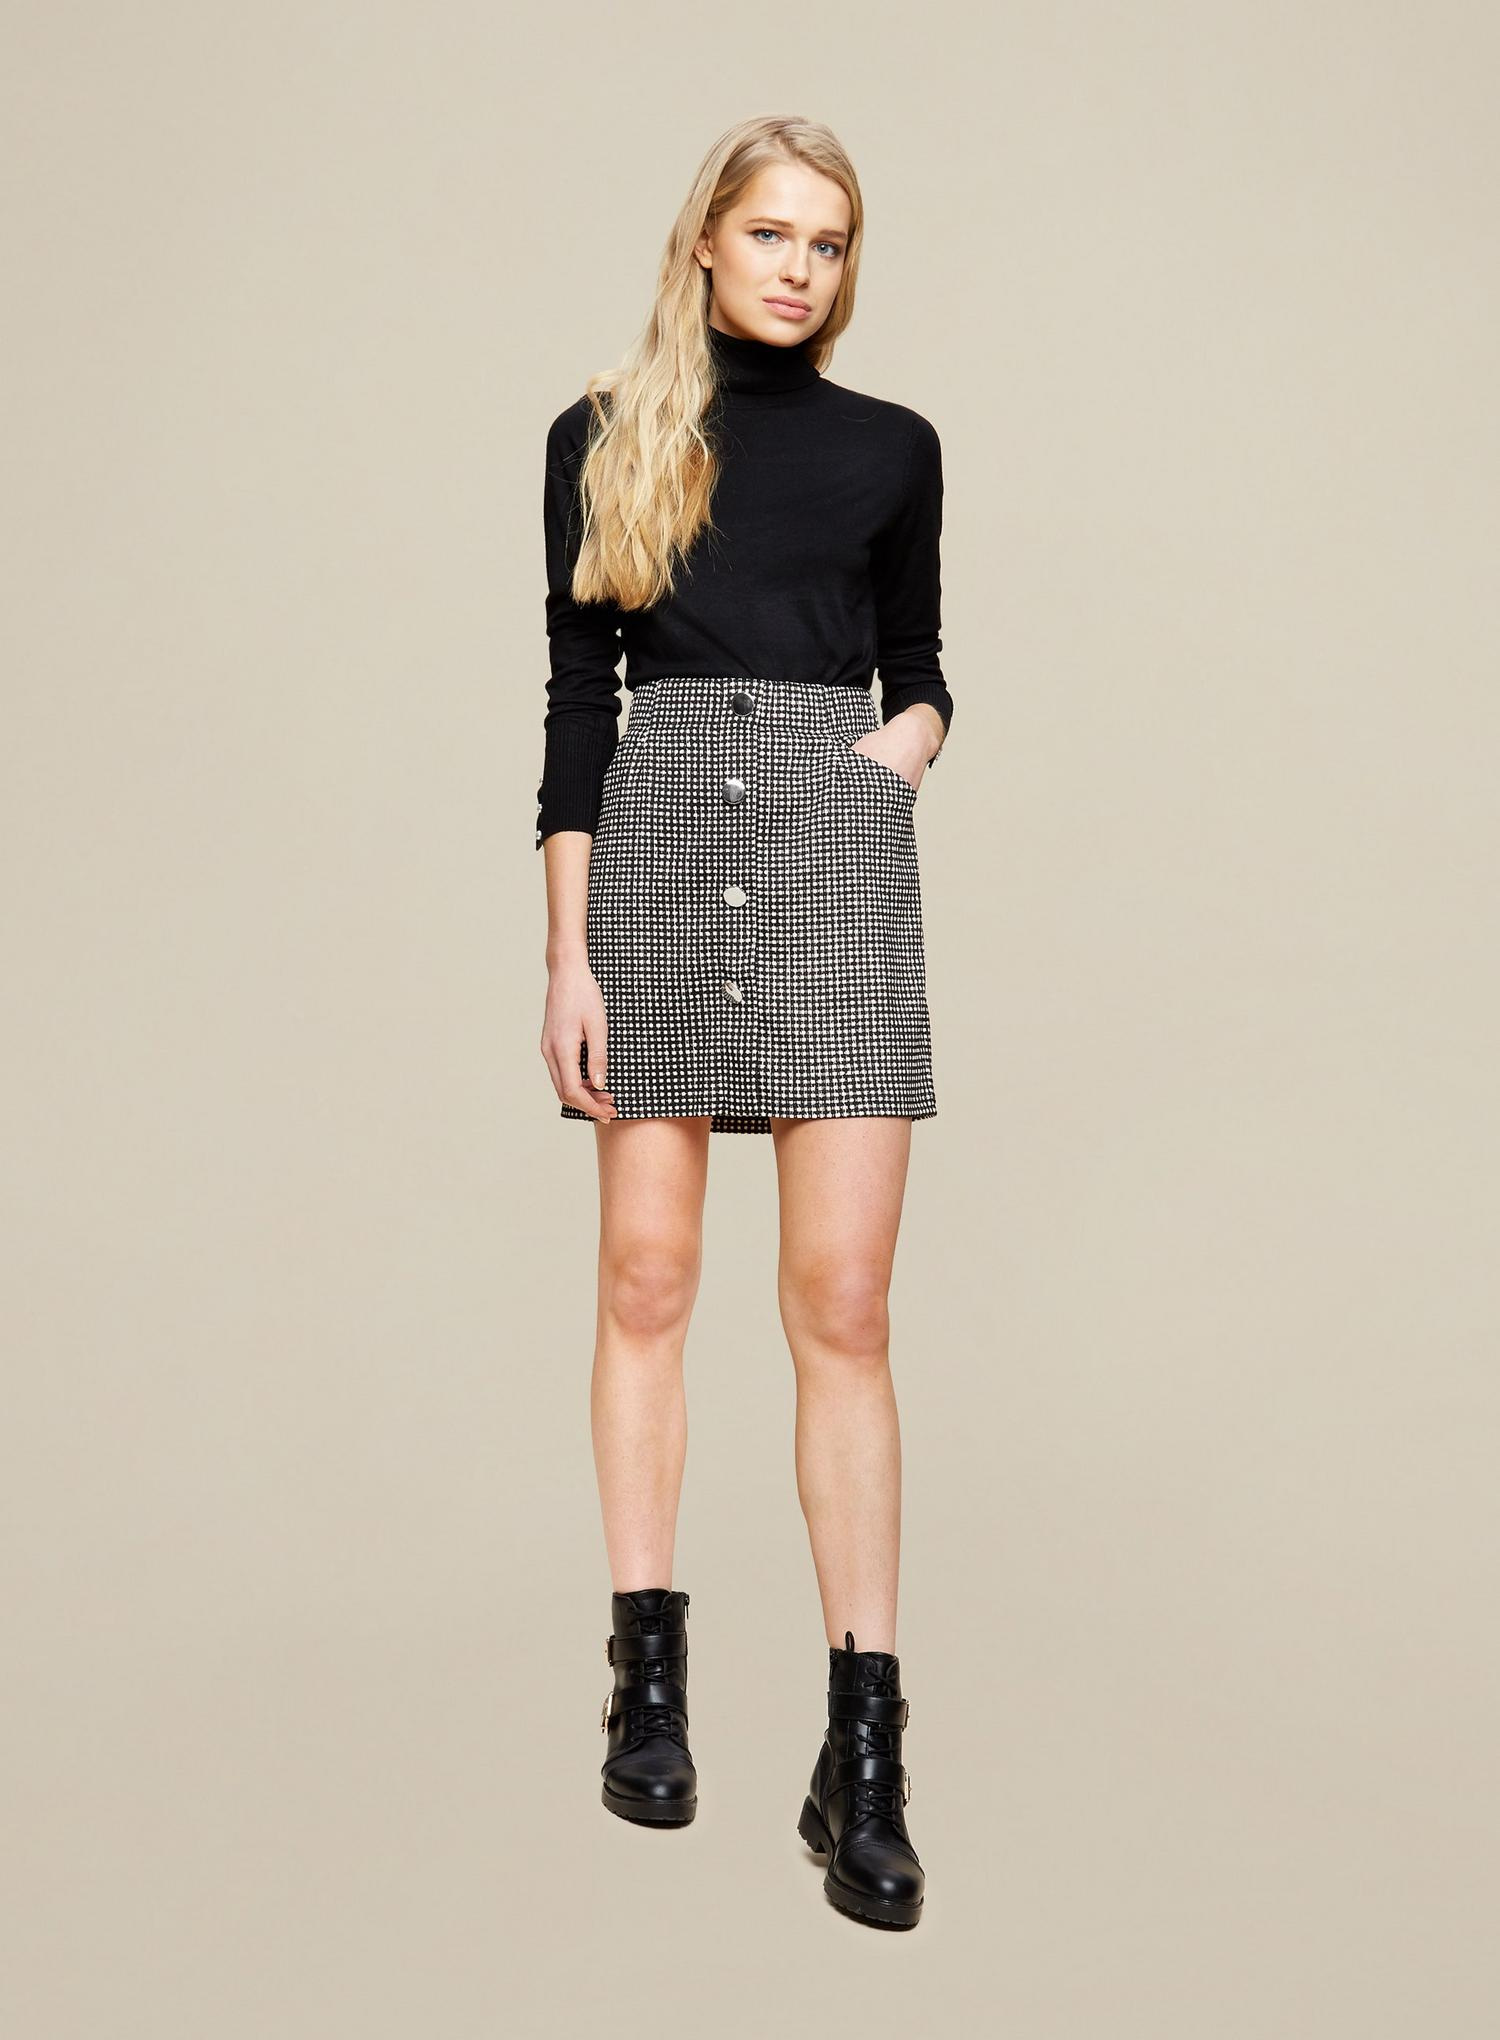 105 Black Gingham Button Front Mini Skirt image number 1